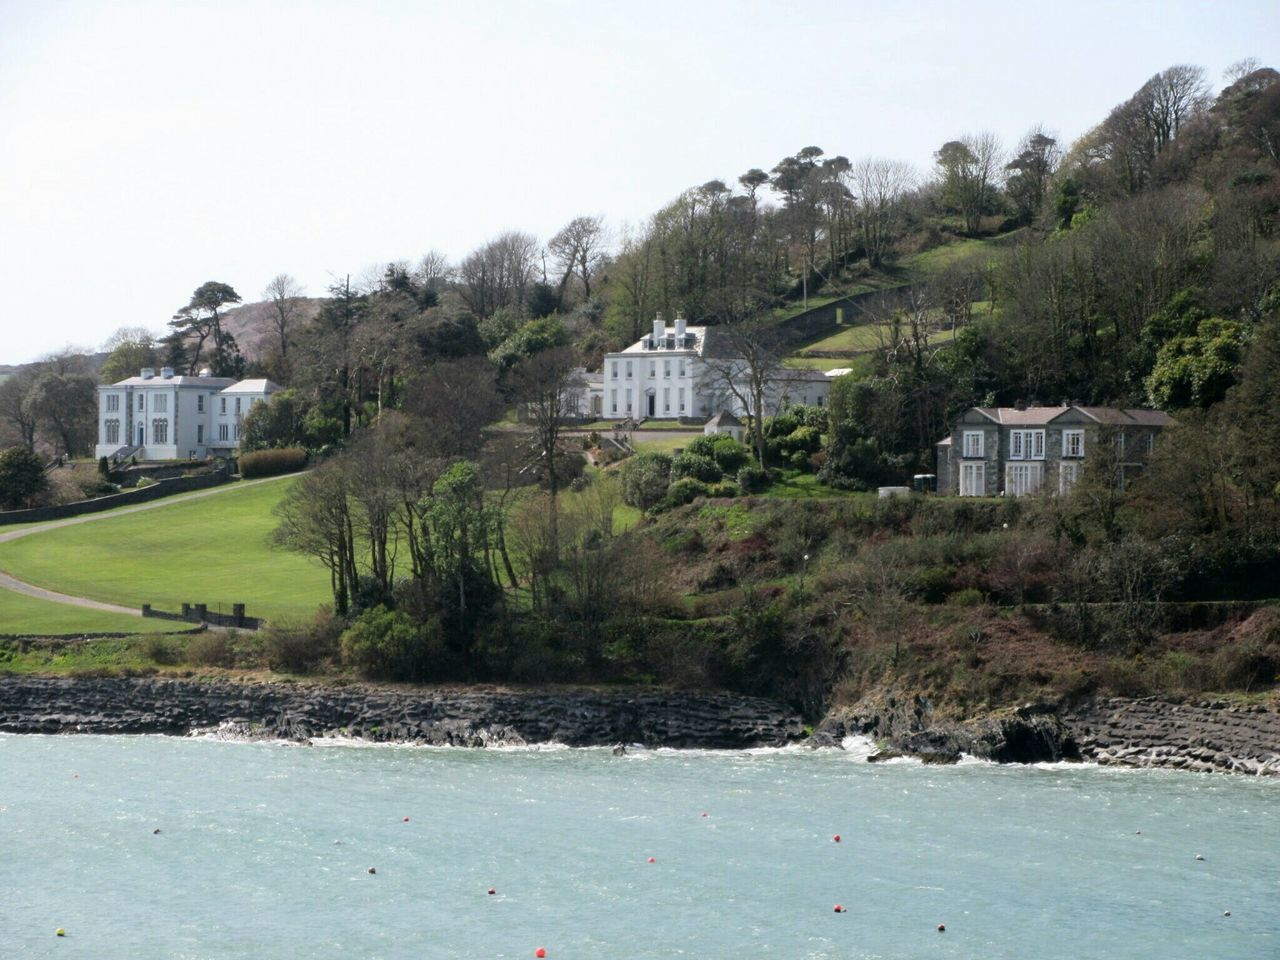 Summer houses Summer House Summer Home Mansion Glandore, Ireland West Cork Wildatlanticway Ireland